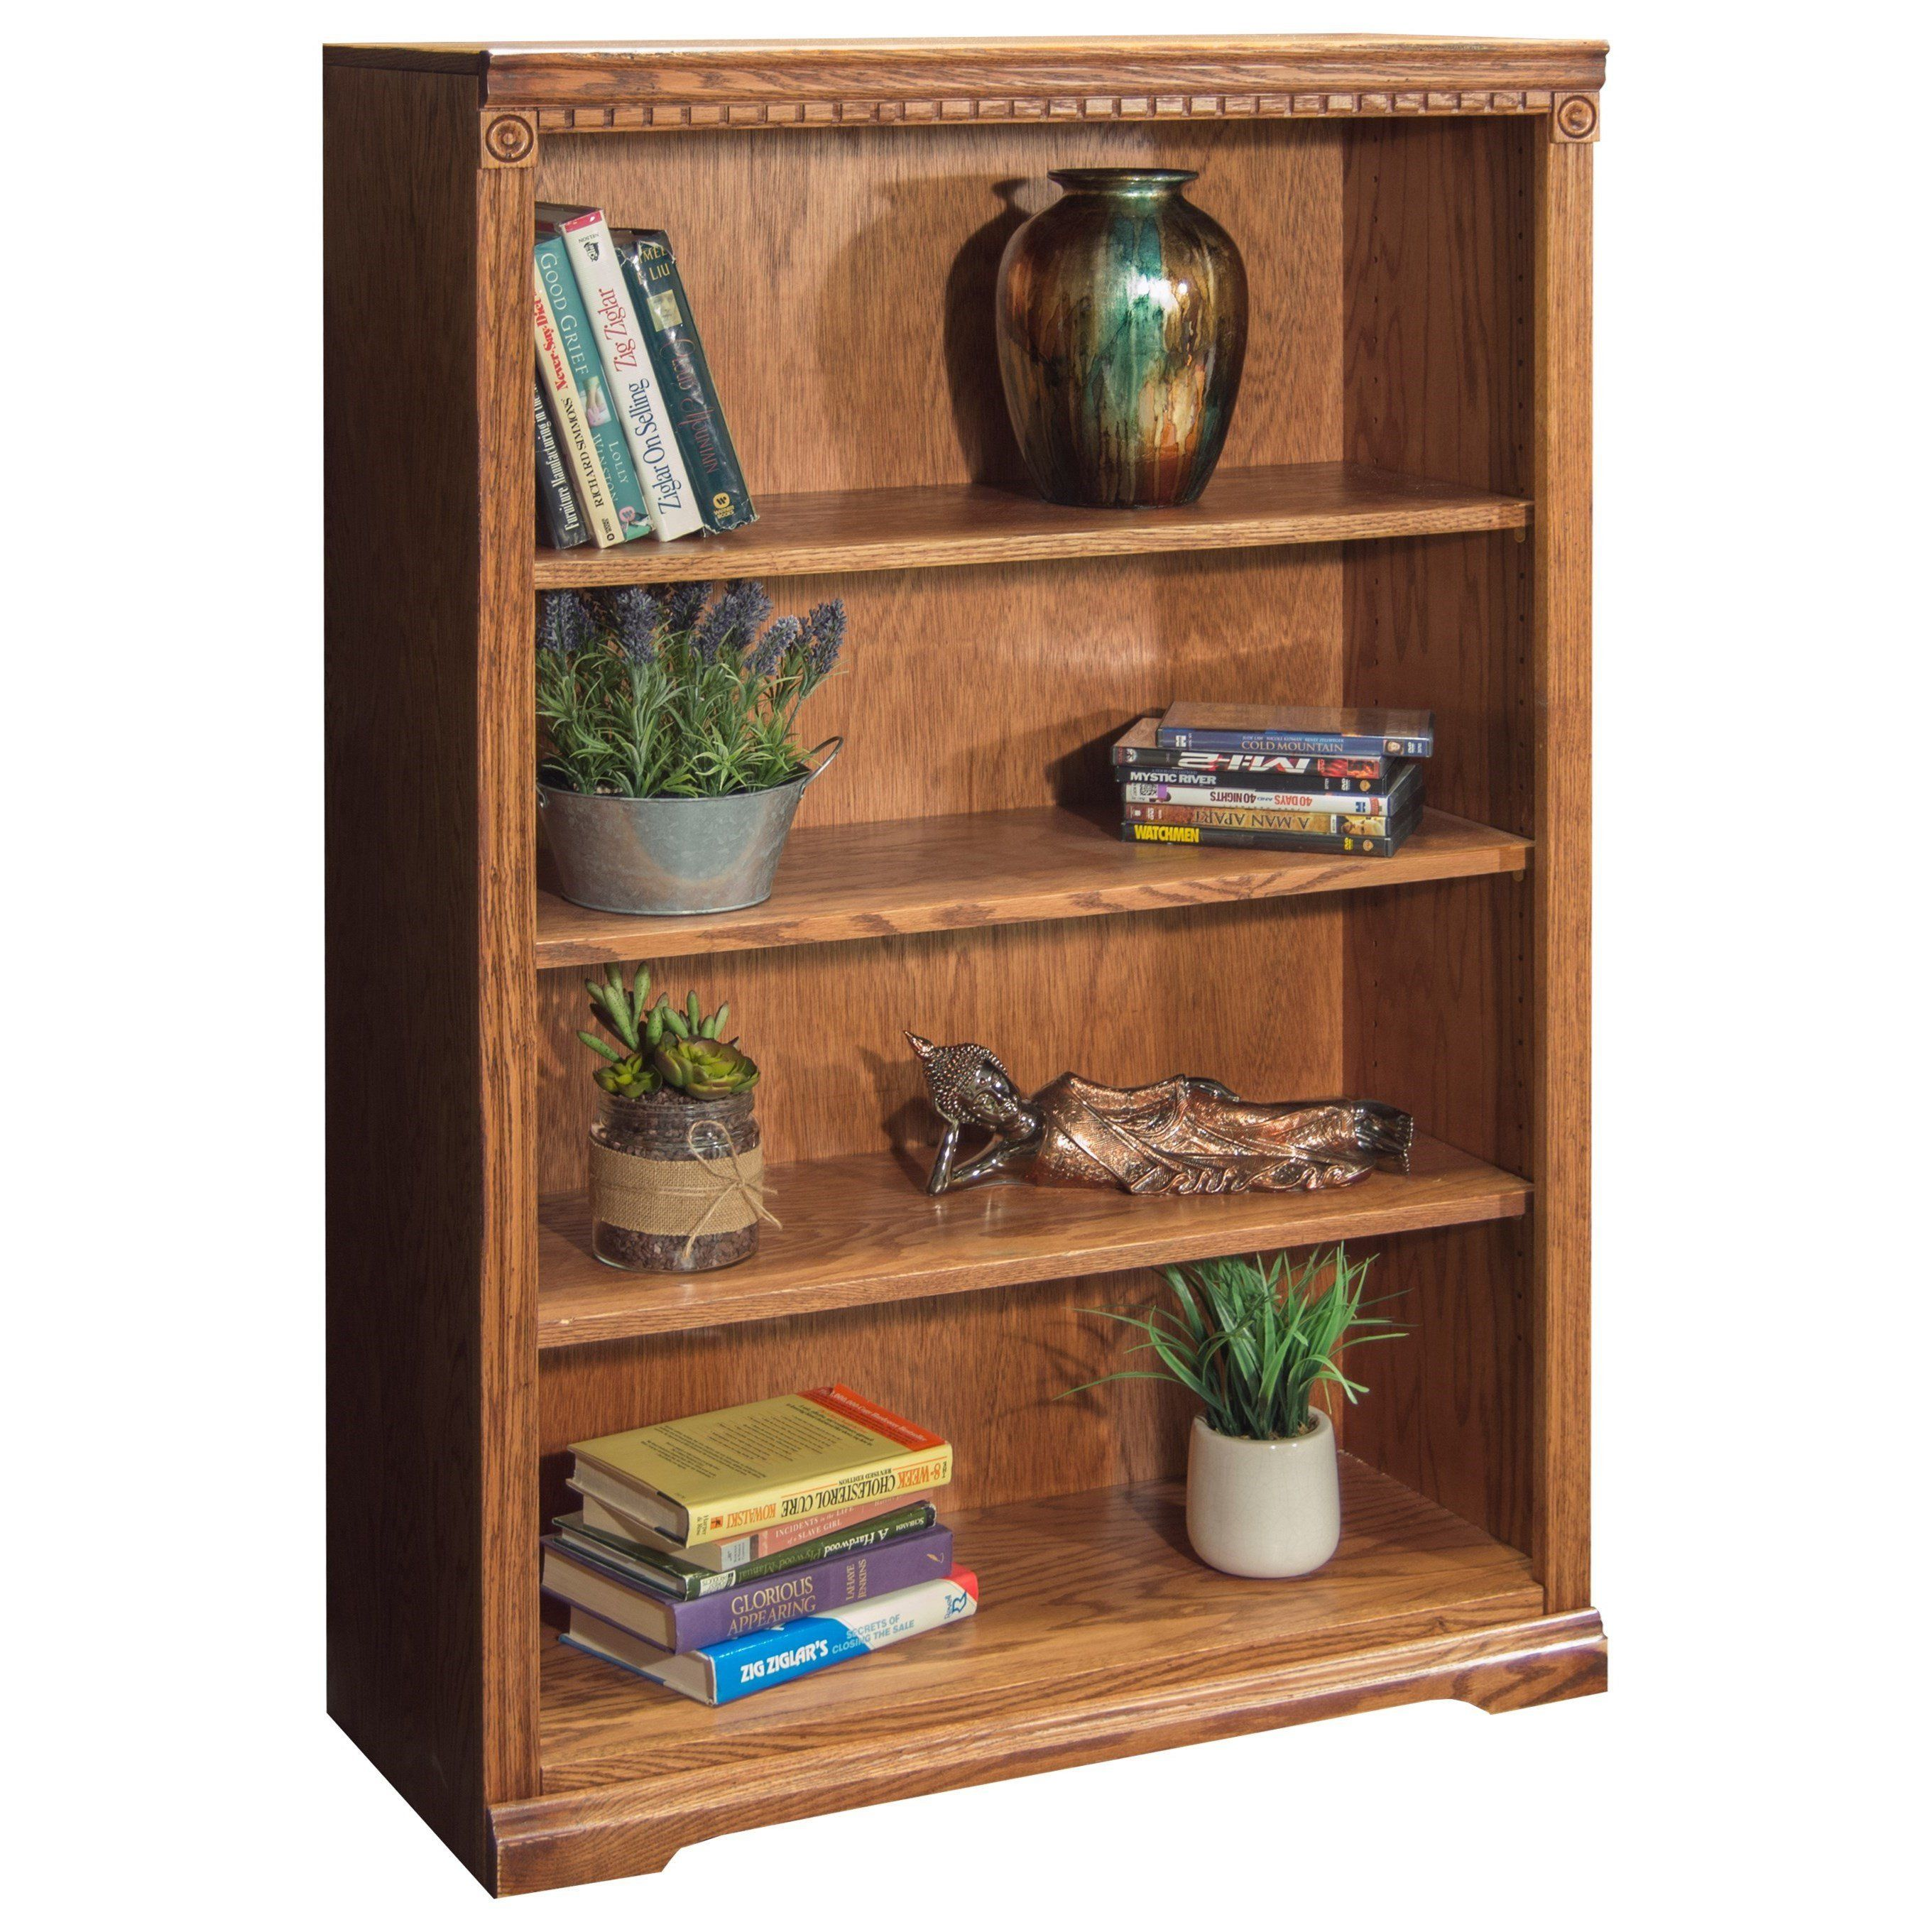 18 Inch Wide Bookcase Luxury Scottsdale Bookcase With Three Adjustable Shelves By Legends Furniture At Boulevard Ho Legends Furniture Bookcase Bright Furniture